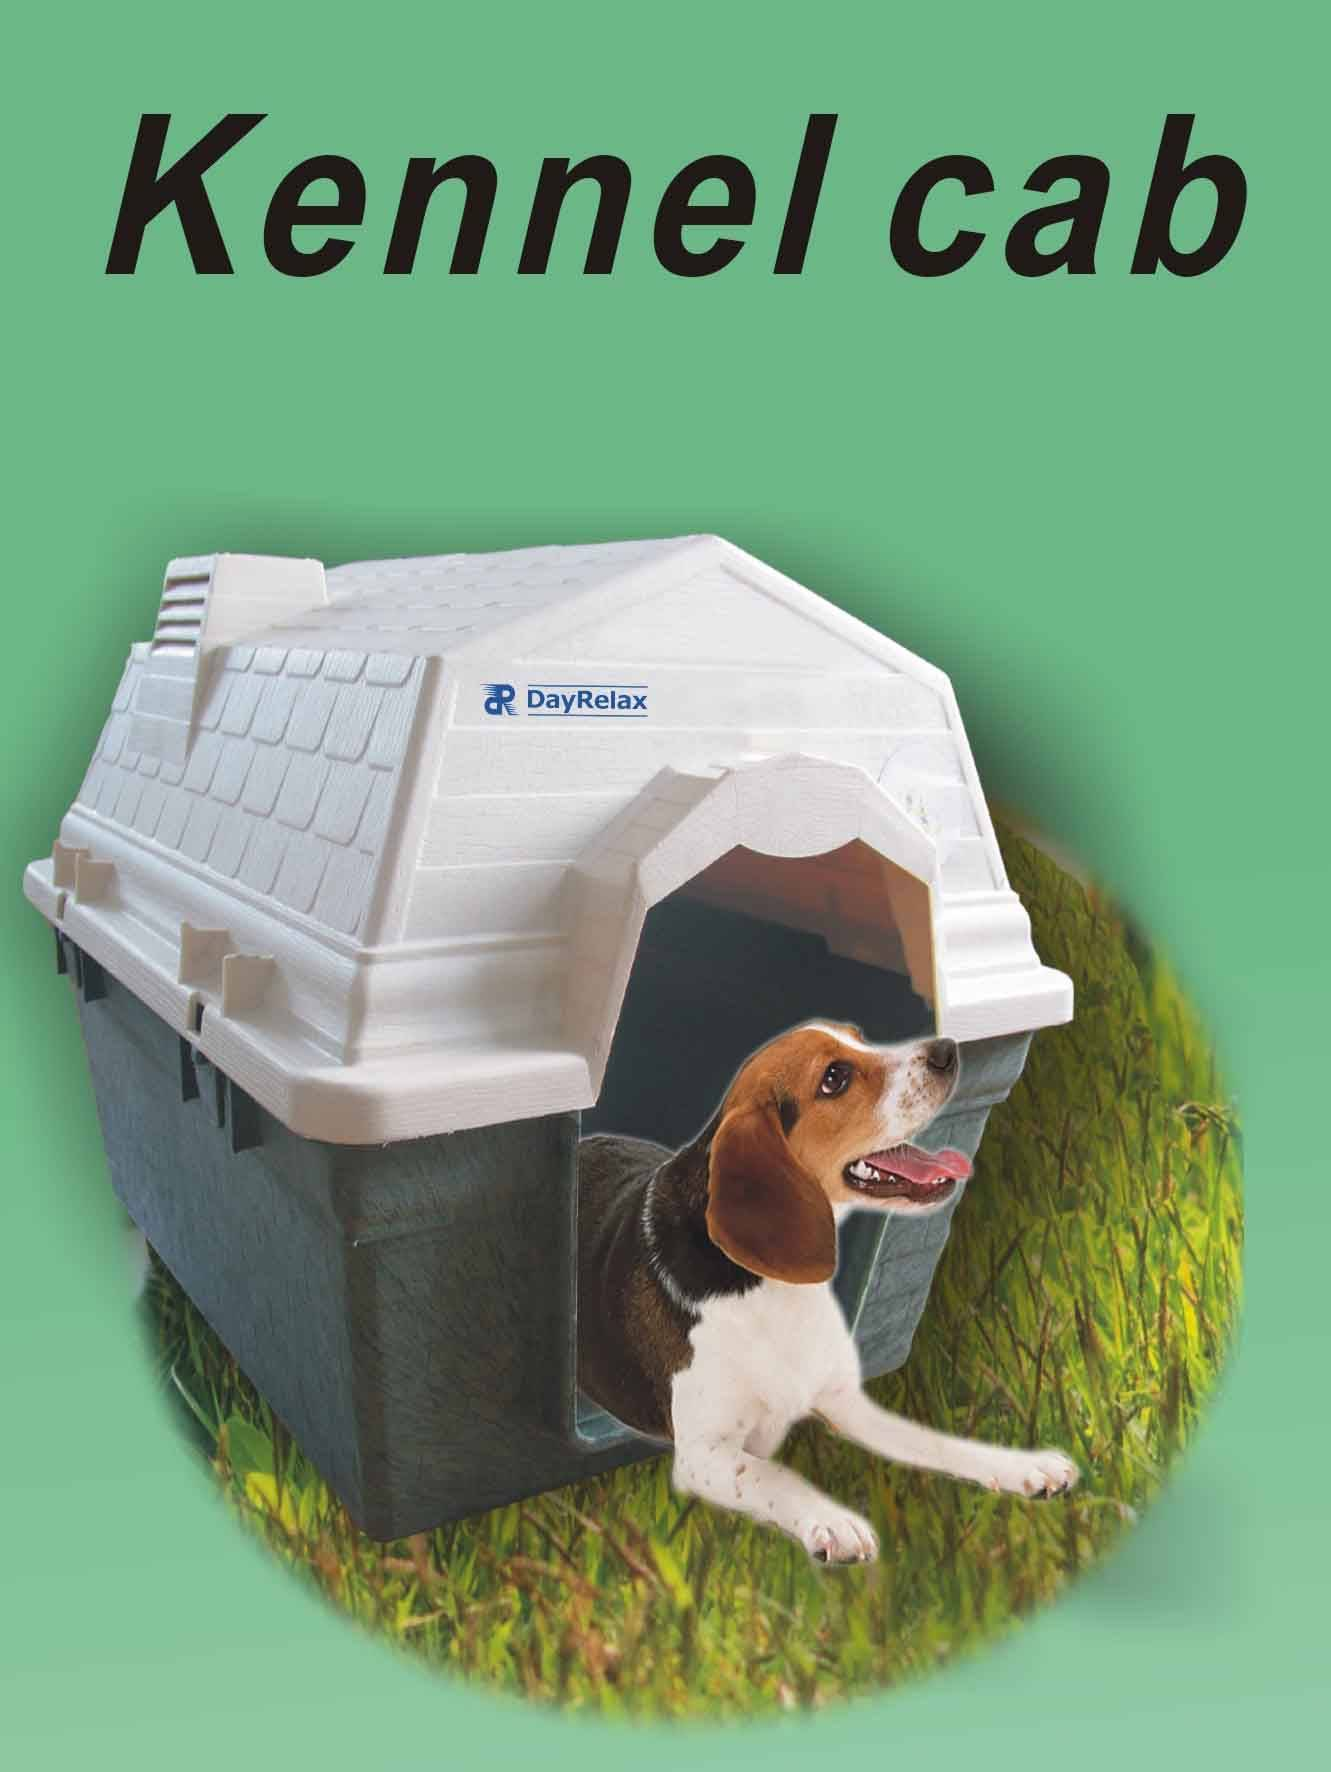 kennek cab(dog house)